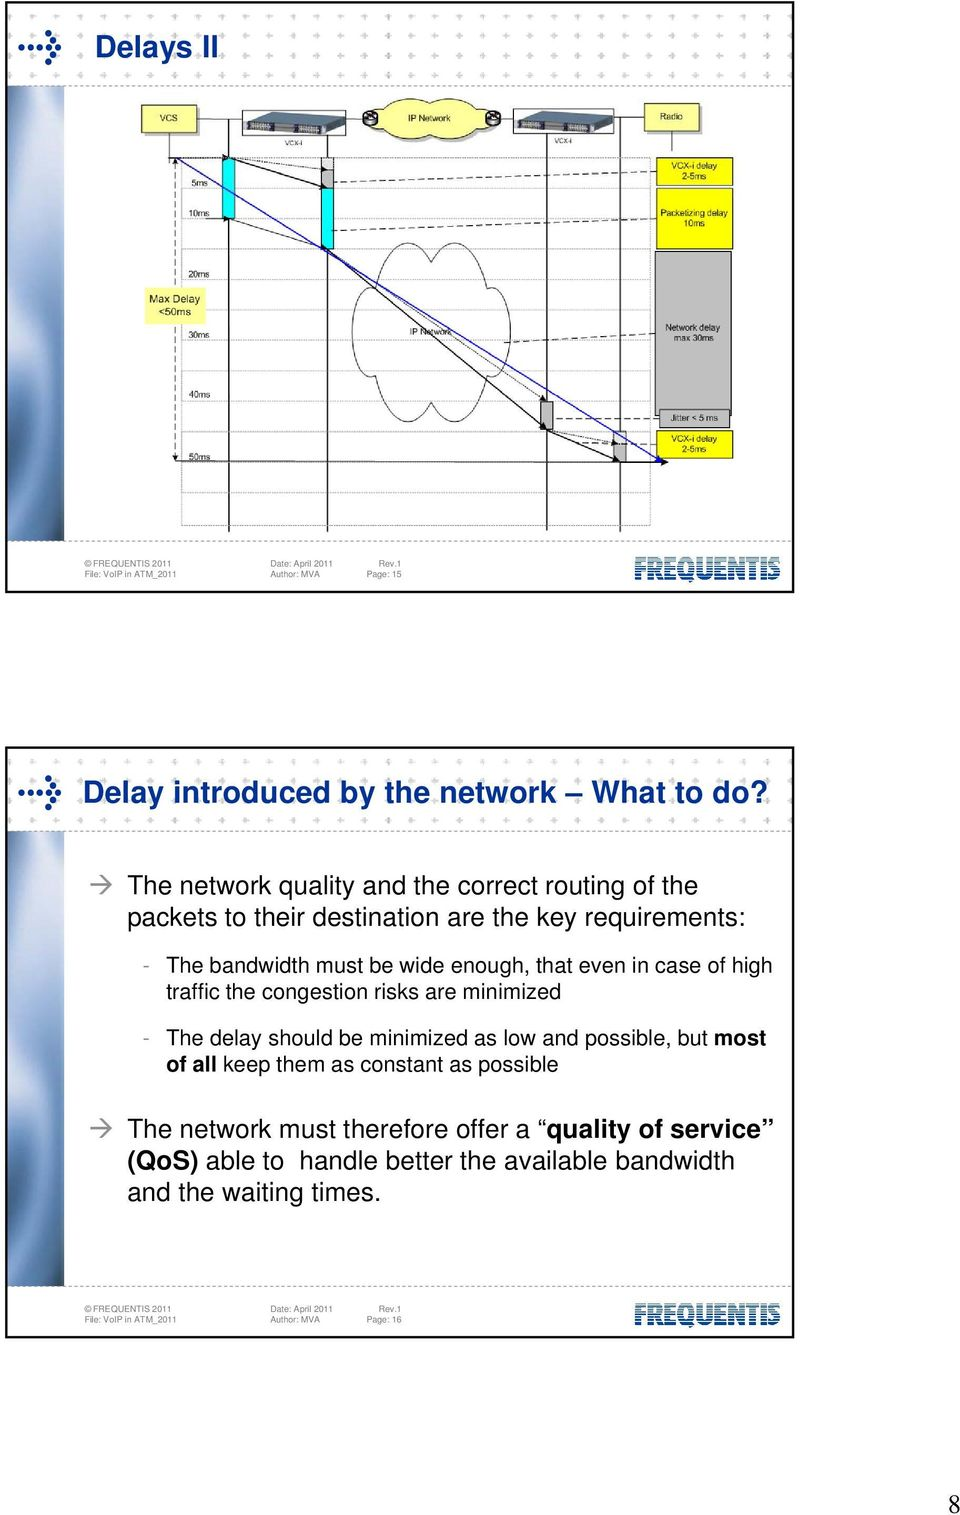 Atc Networks Are The Application Area For Voip In Atm Pdf Simulator Software Engineering Case Study Even Of High Traffic Congestion Risks Minimized Delay Should Be